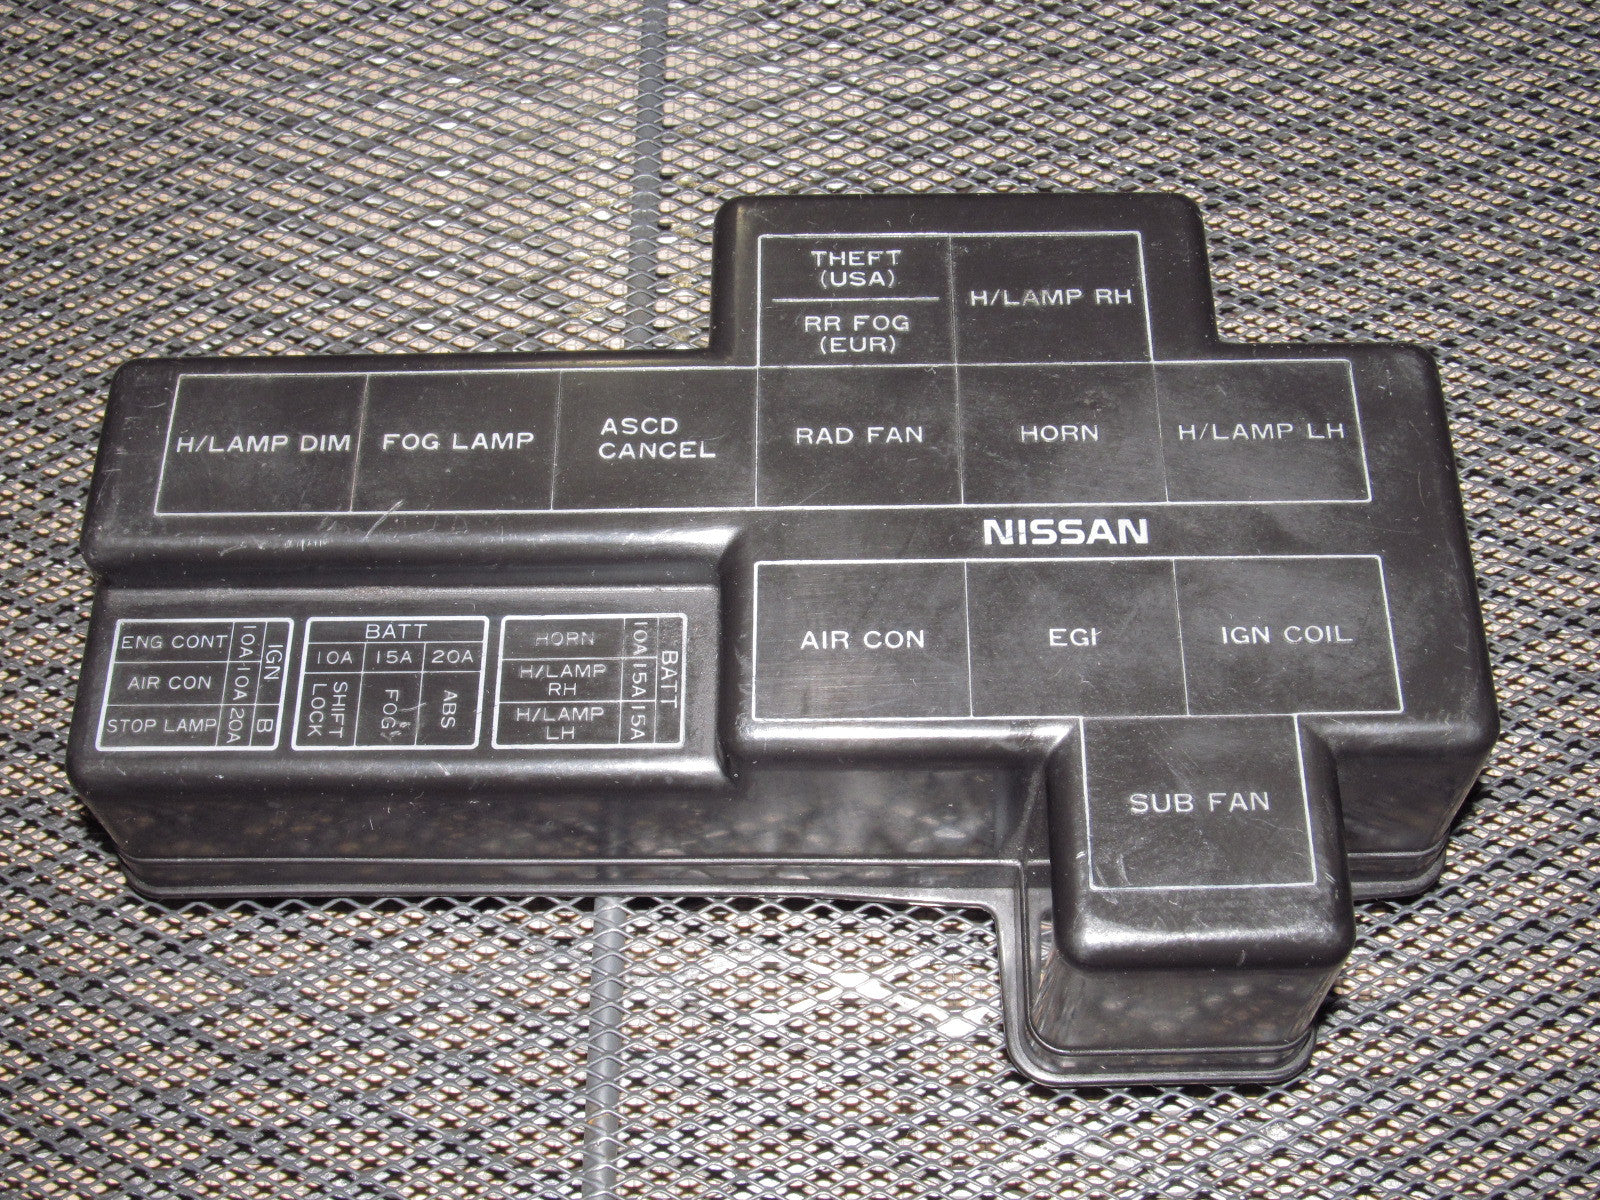 1993 300zx fuse box location 91 na 300zx fuse box 90-96 nissan 300zx oem engine fuse box cover – autopartone.com #4